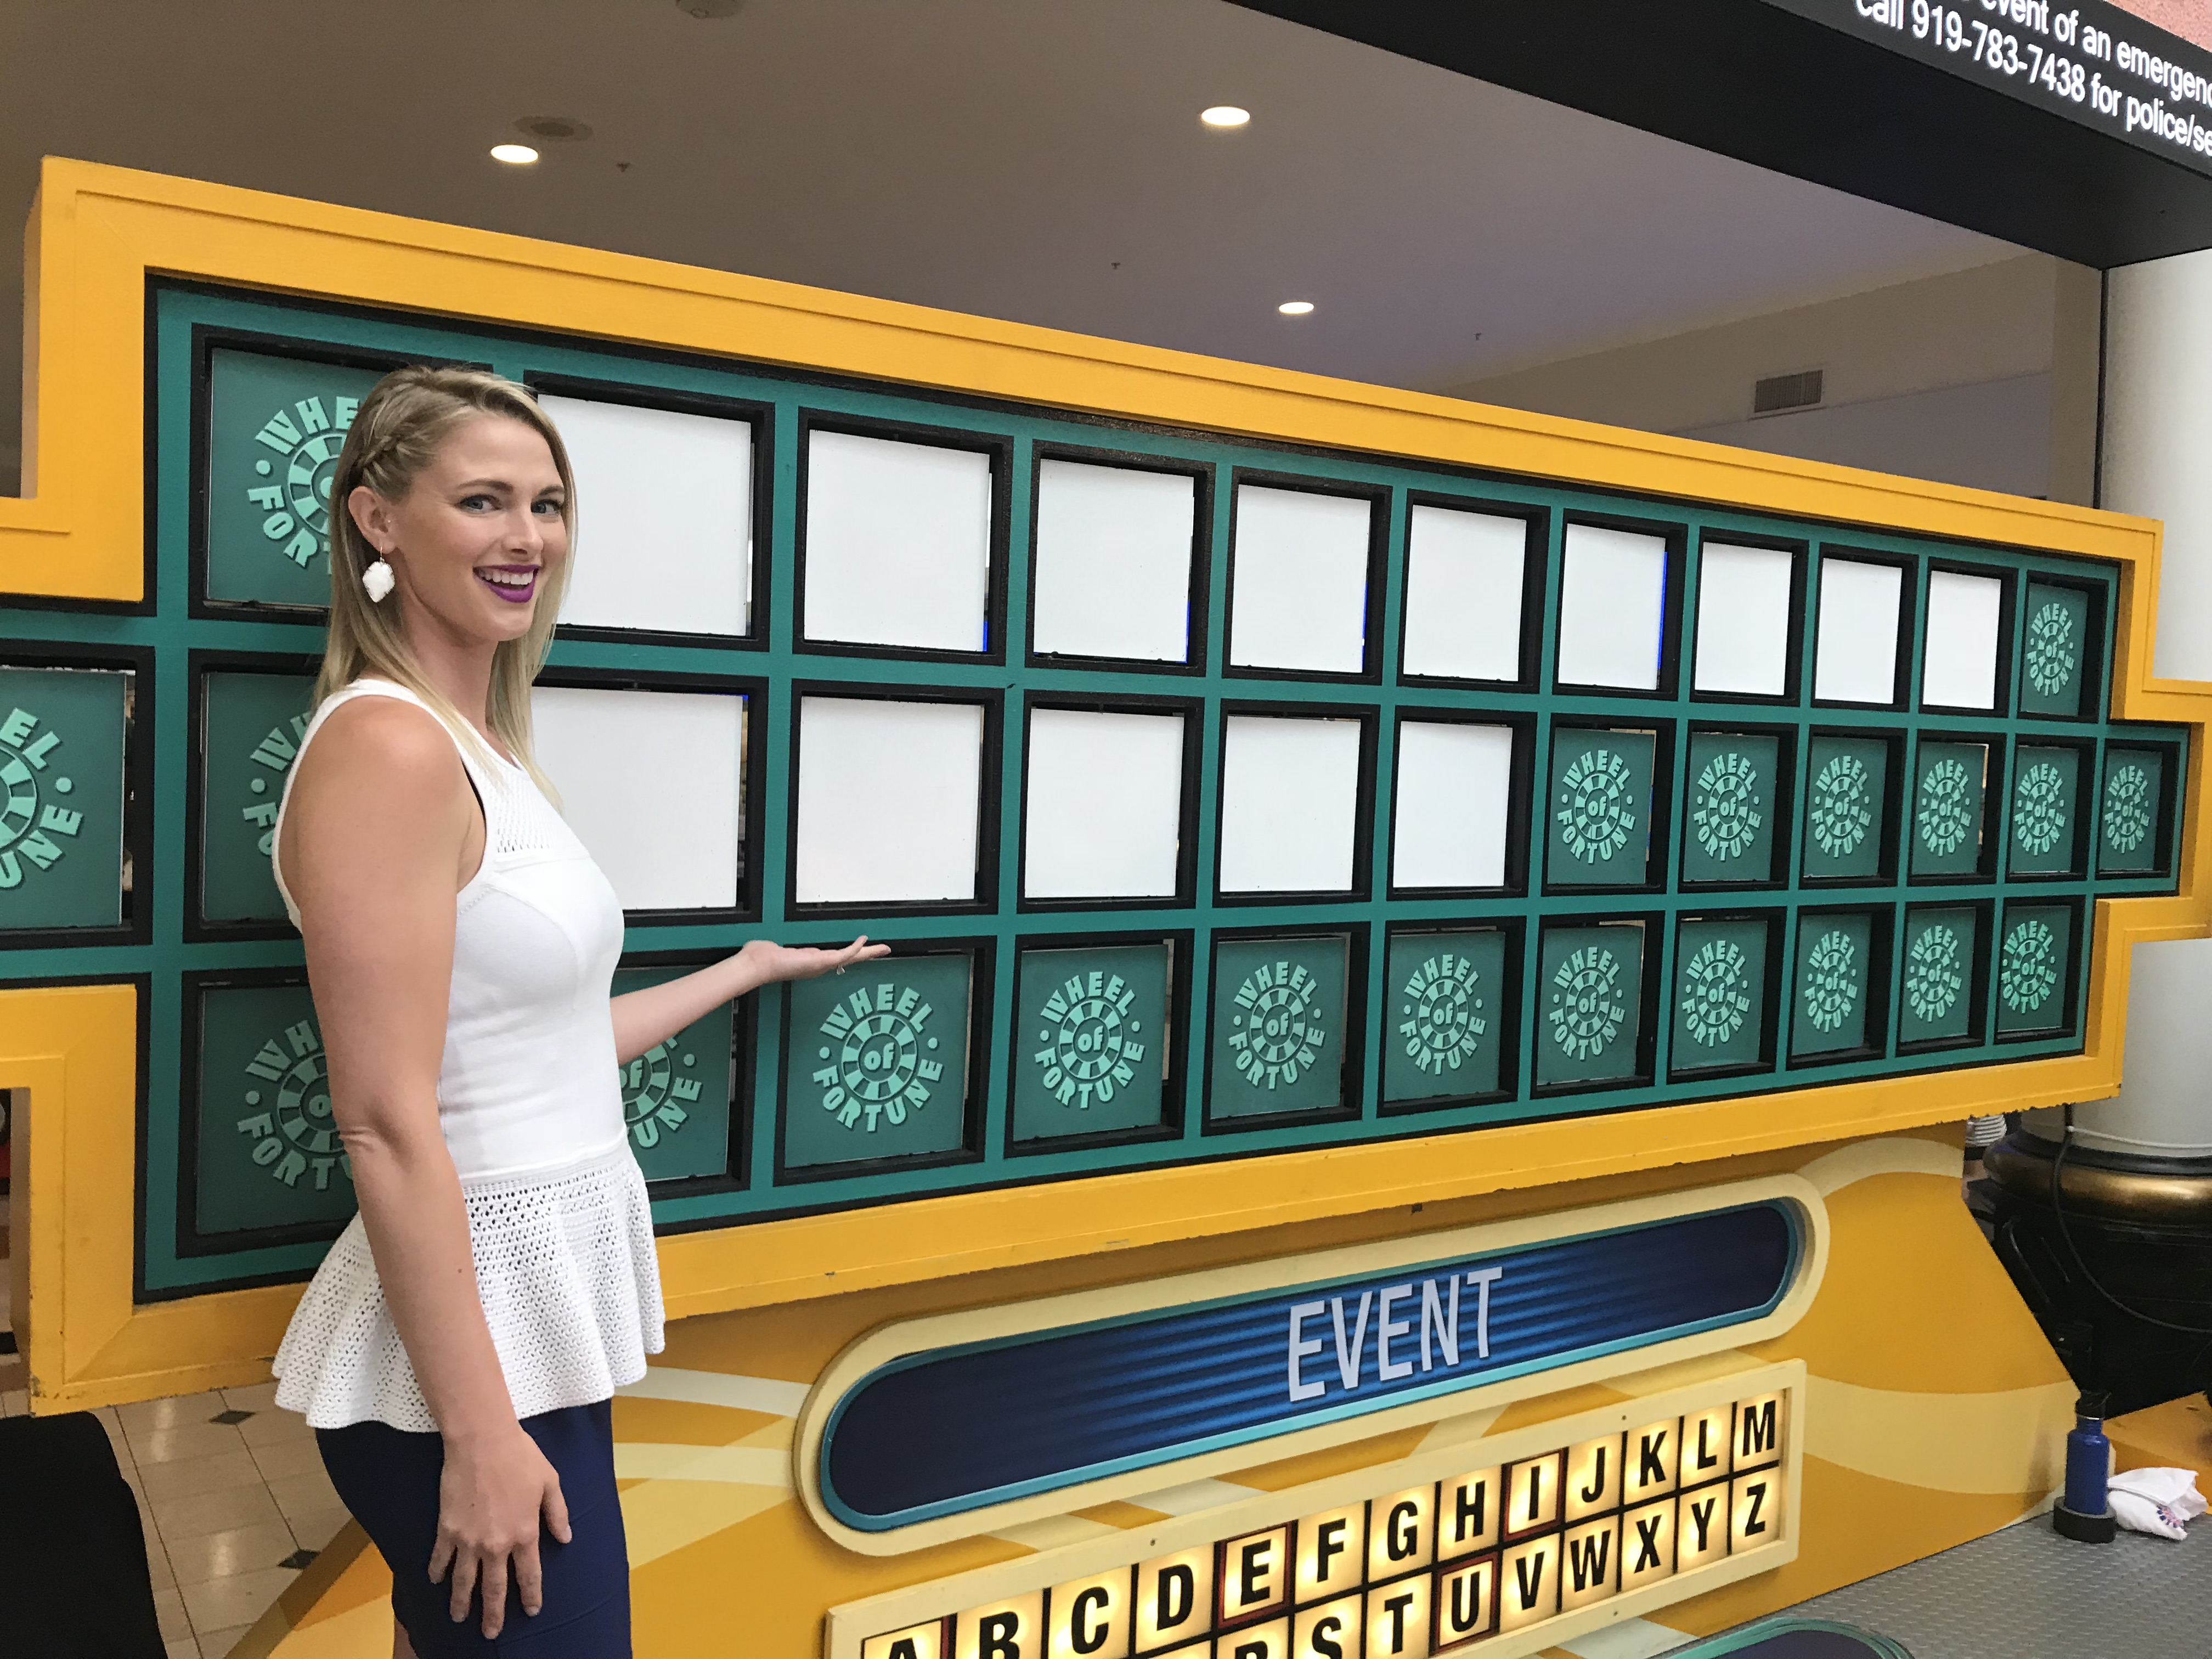 <div class='meta'><div class='origin-logo' data-origin='WTVD'></div><span class='caption-text' data-credit=''>Faces in the crowd at Raleigh Wheel of Fortune.</span></div>